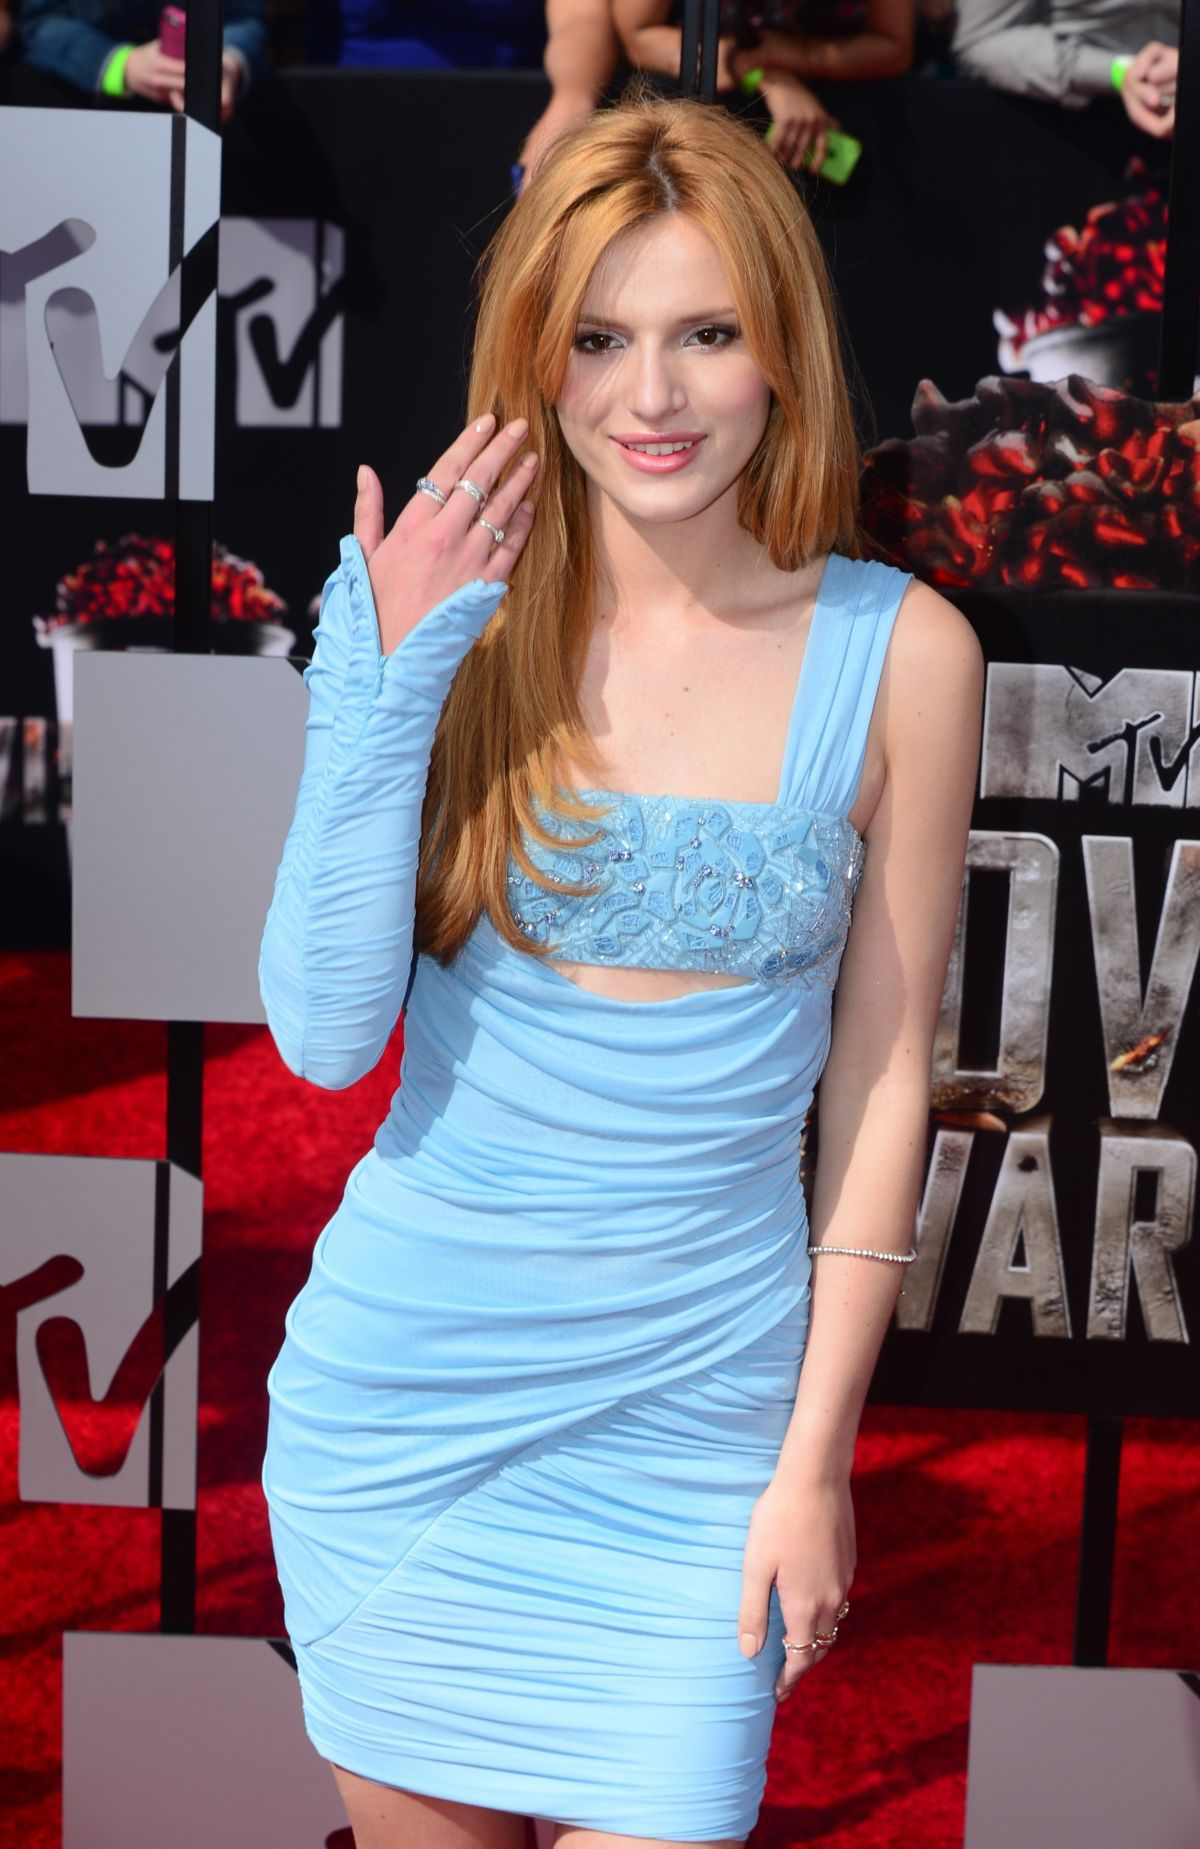 BELLA THORNE at MTV Movie Awards 2014 in Los Angeles